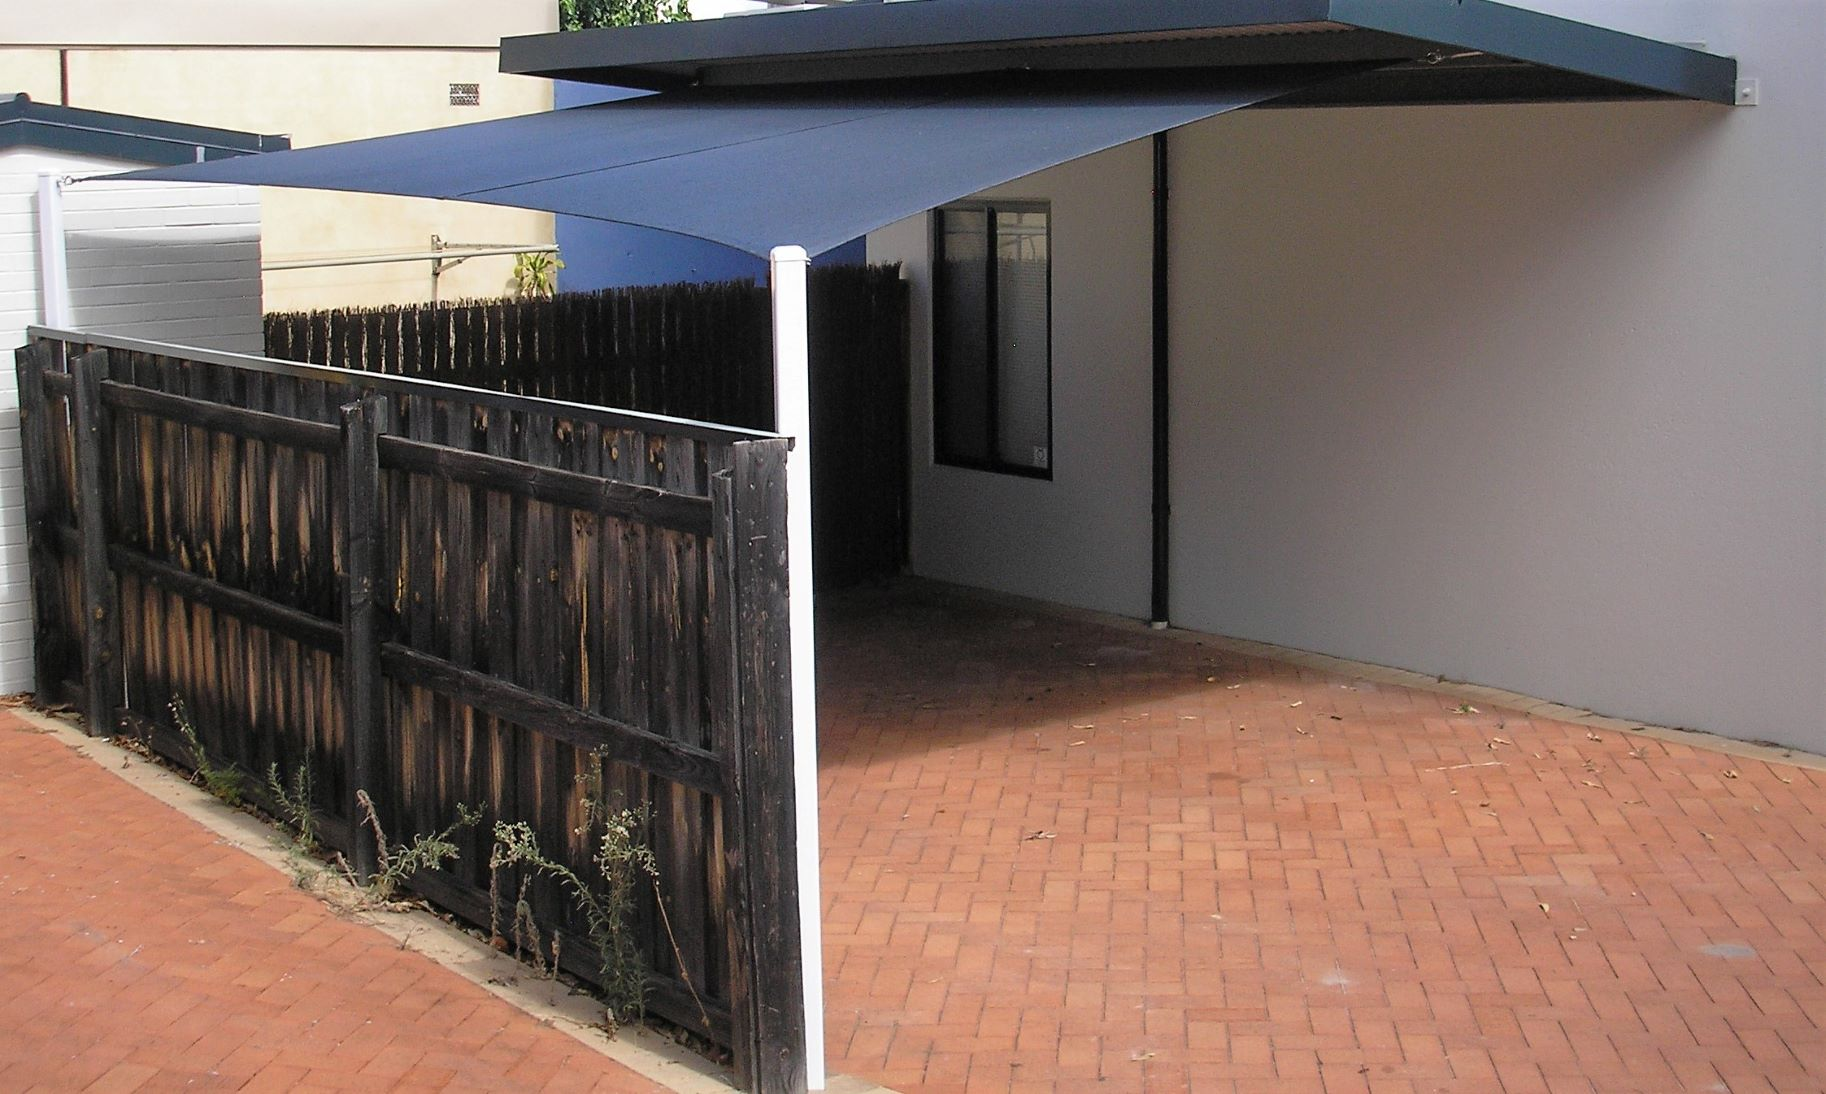 Carport Shade Sail in Commshade Slate